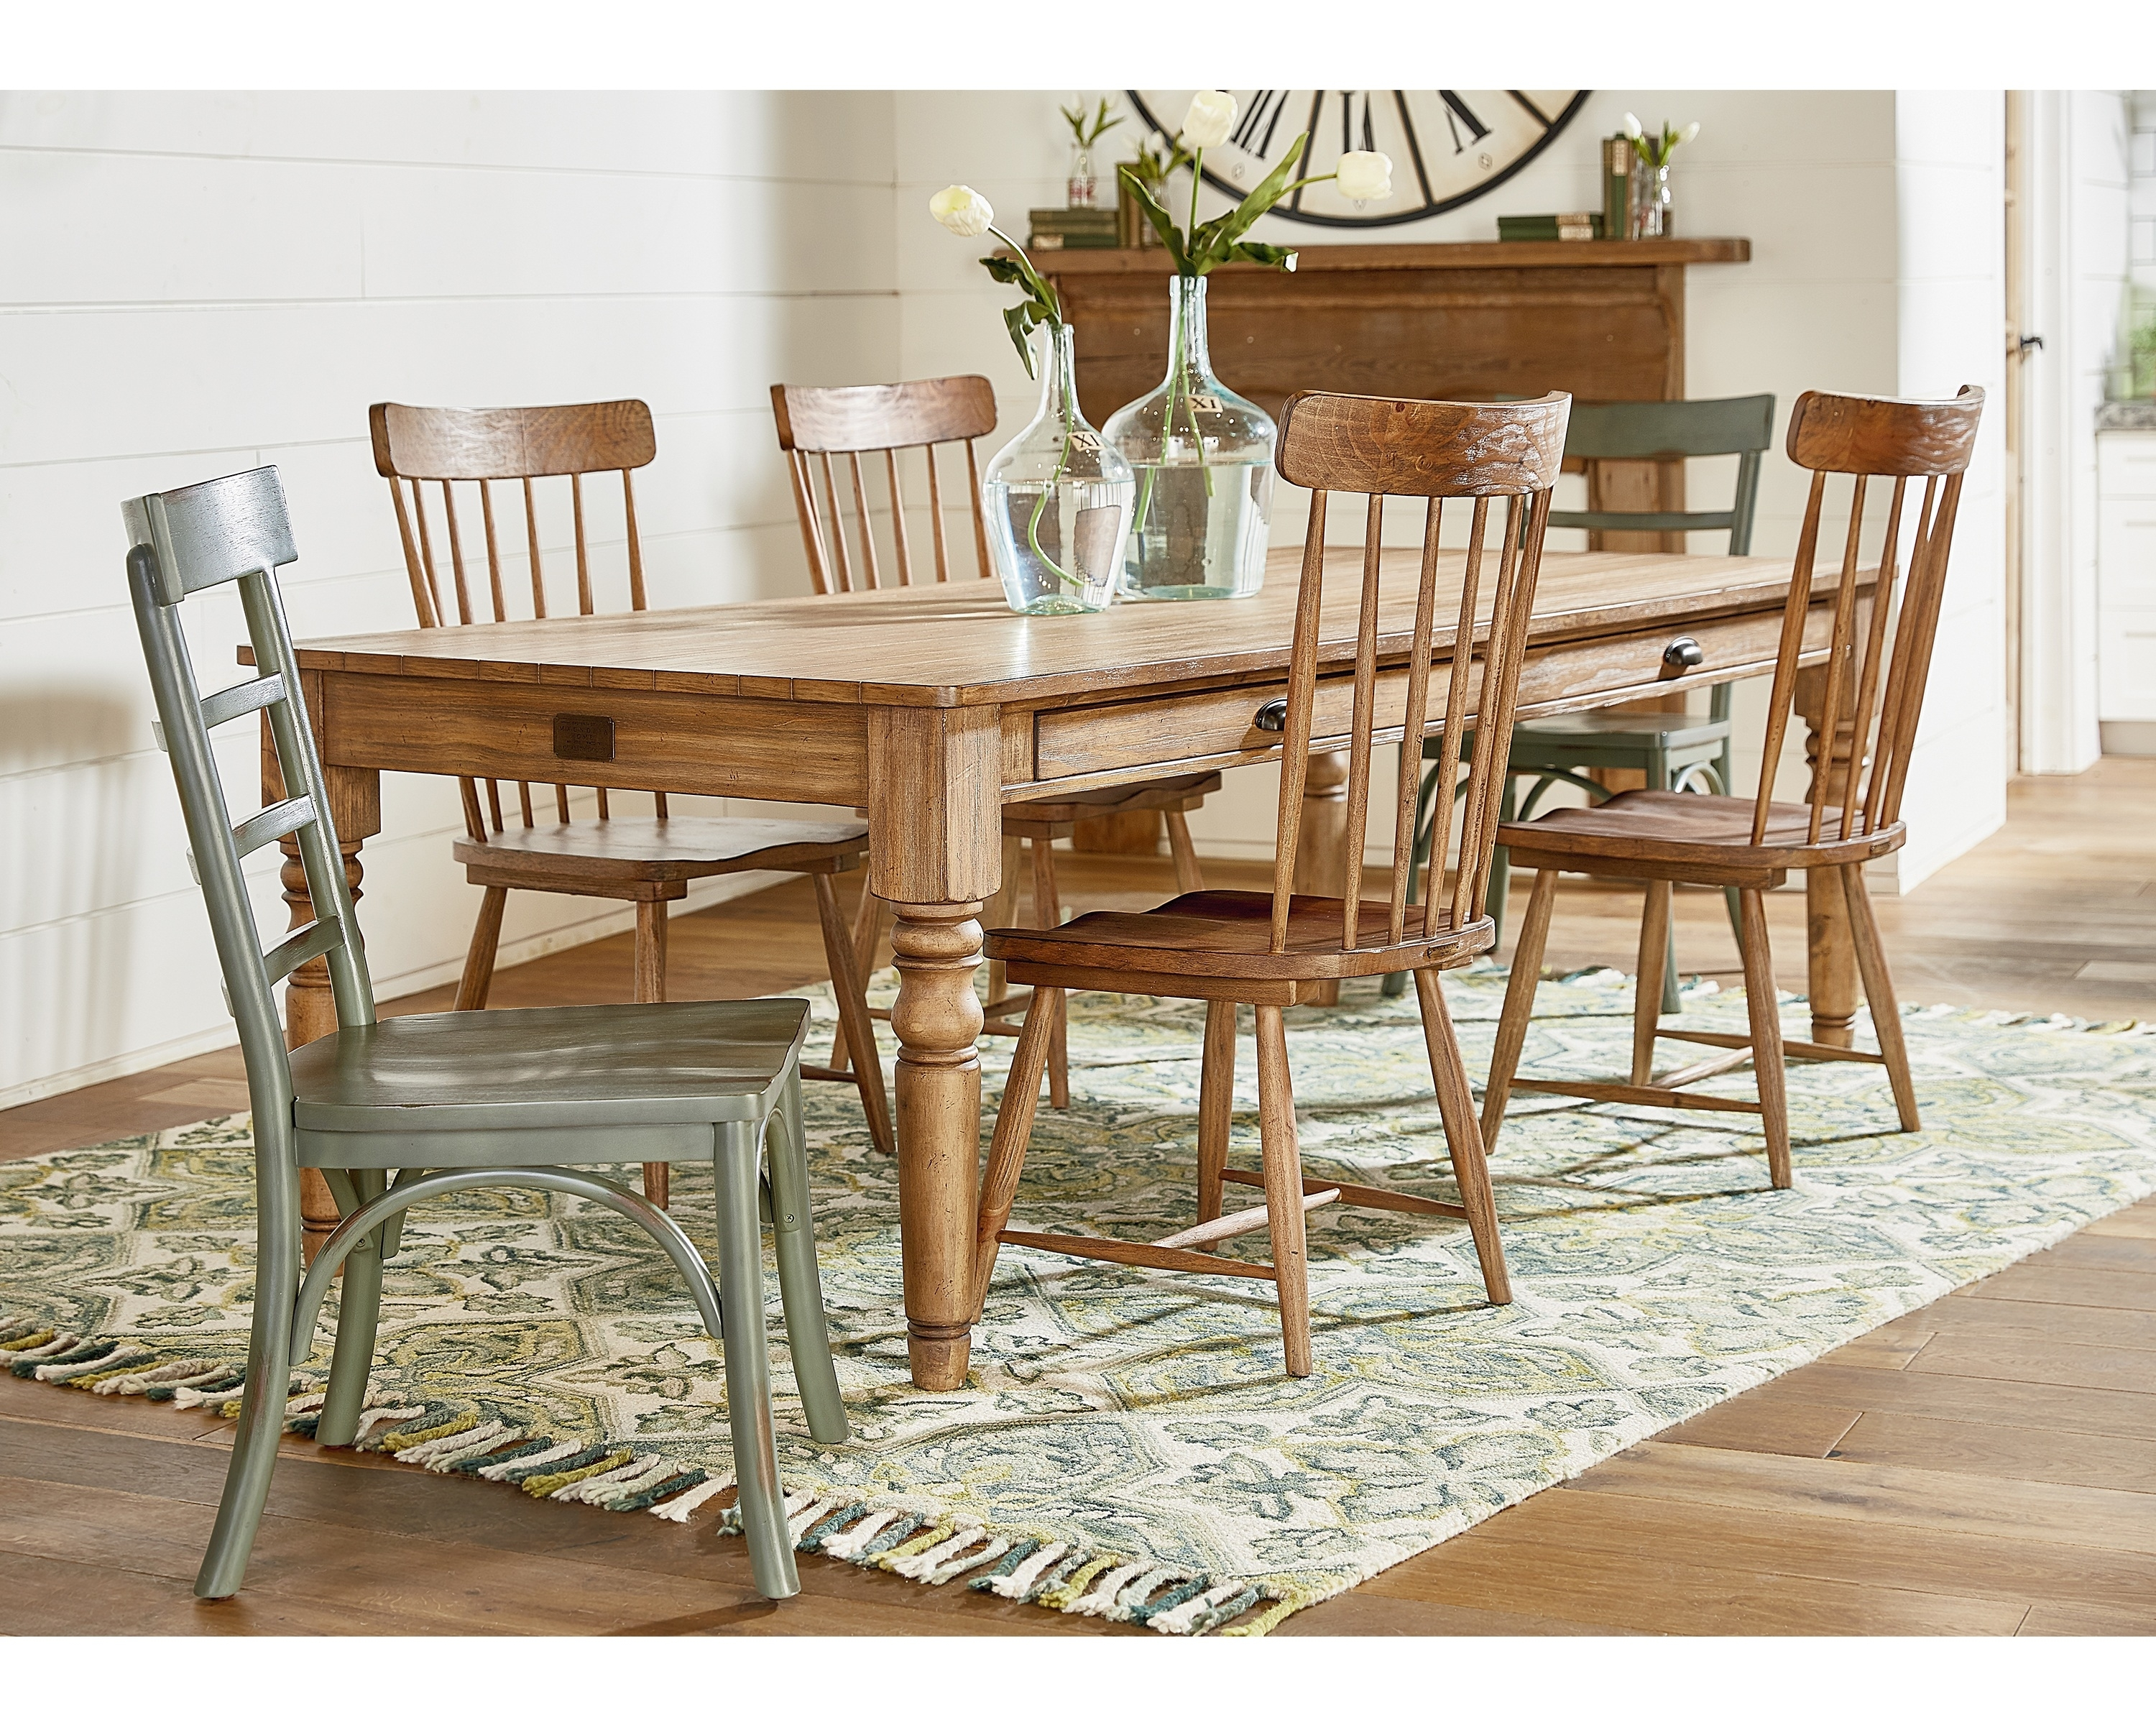 Taper Turned Dining Table – Magnolia Home Intended For Current Magnolia Home Bench Keeping 96 Inch Dining Tables (Image 18 of 20)